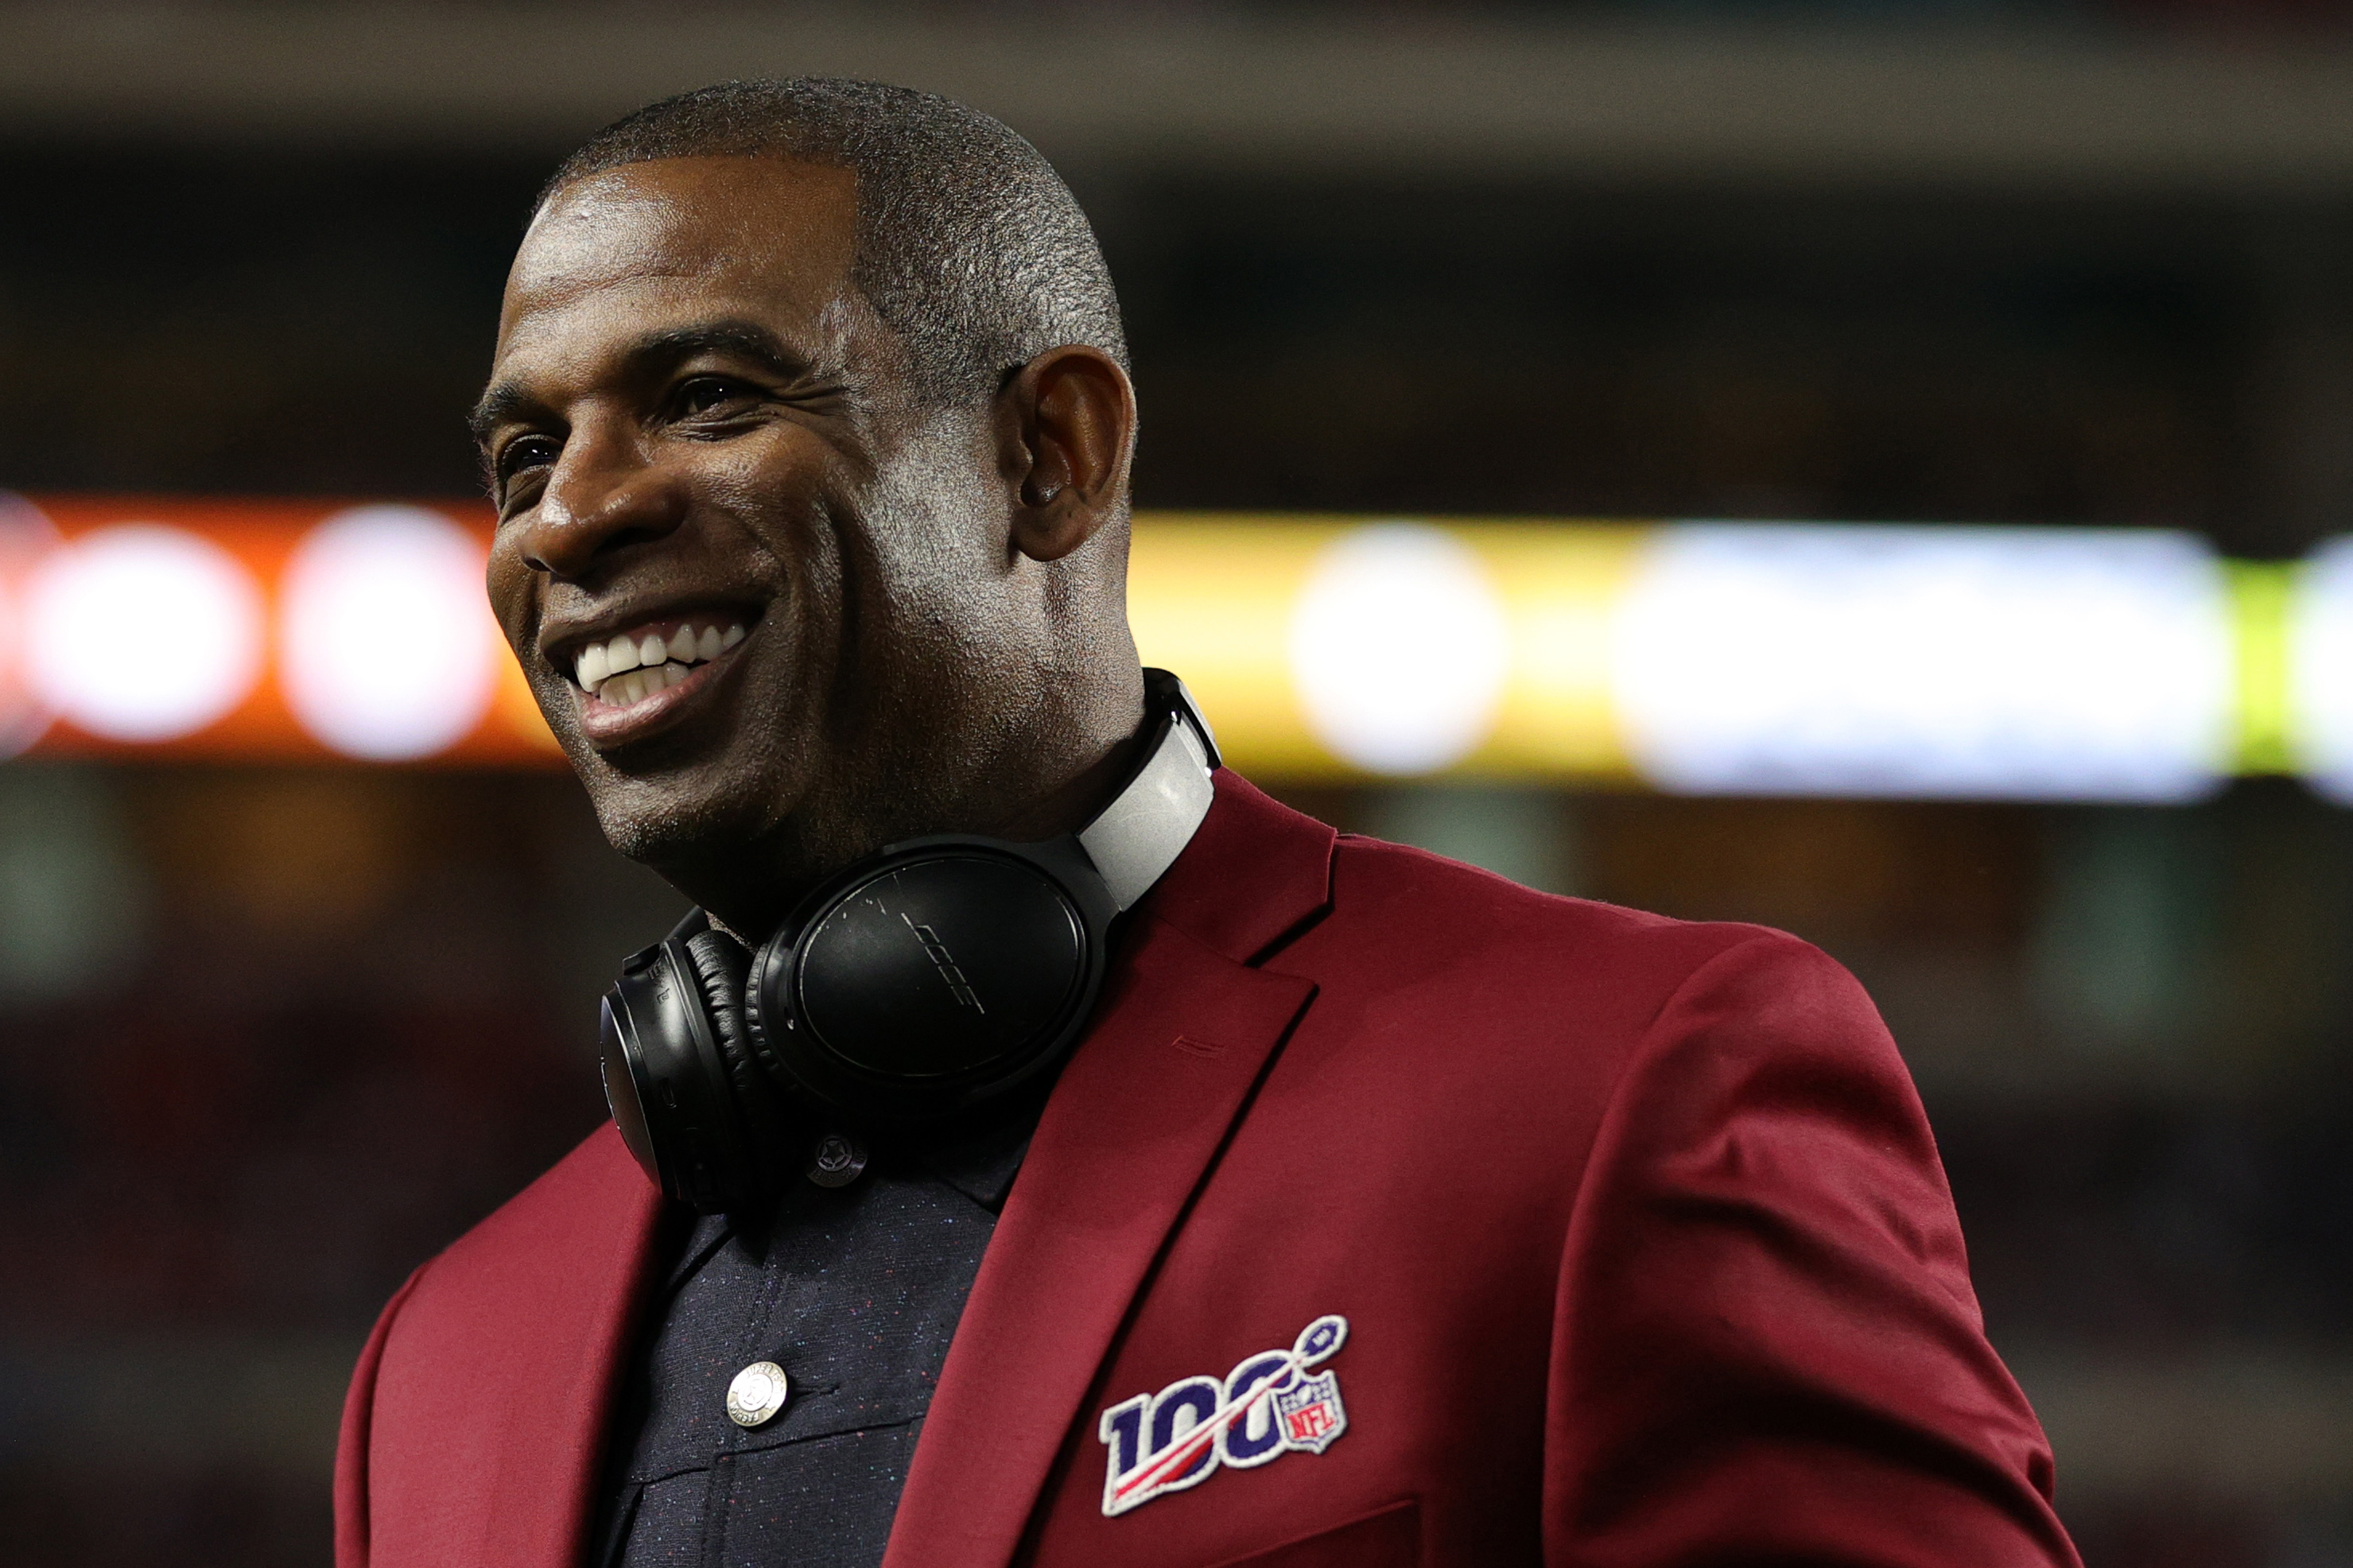 NFL Hall of Famer Deion Sanders is the new head football coach at Jackson State